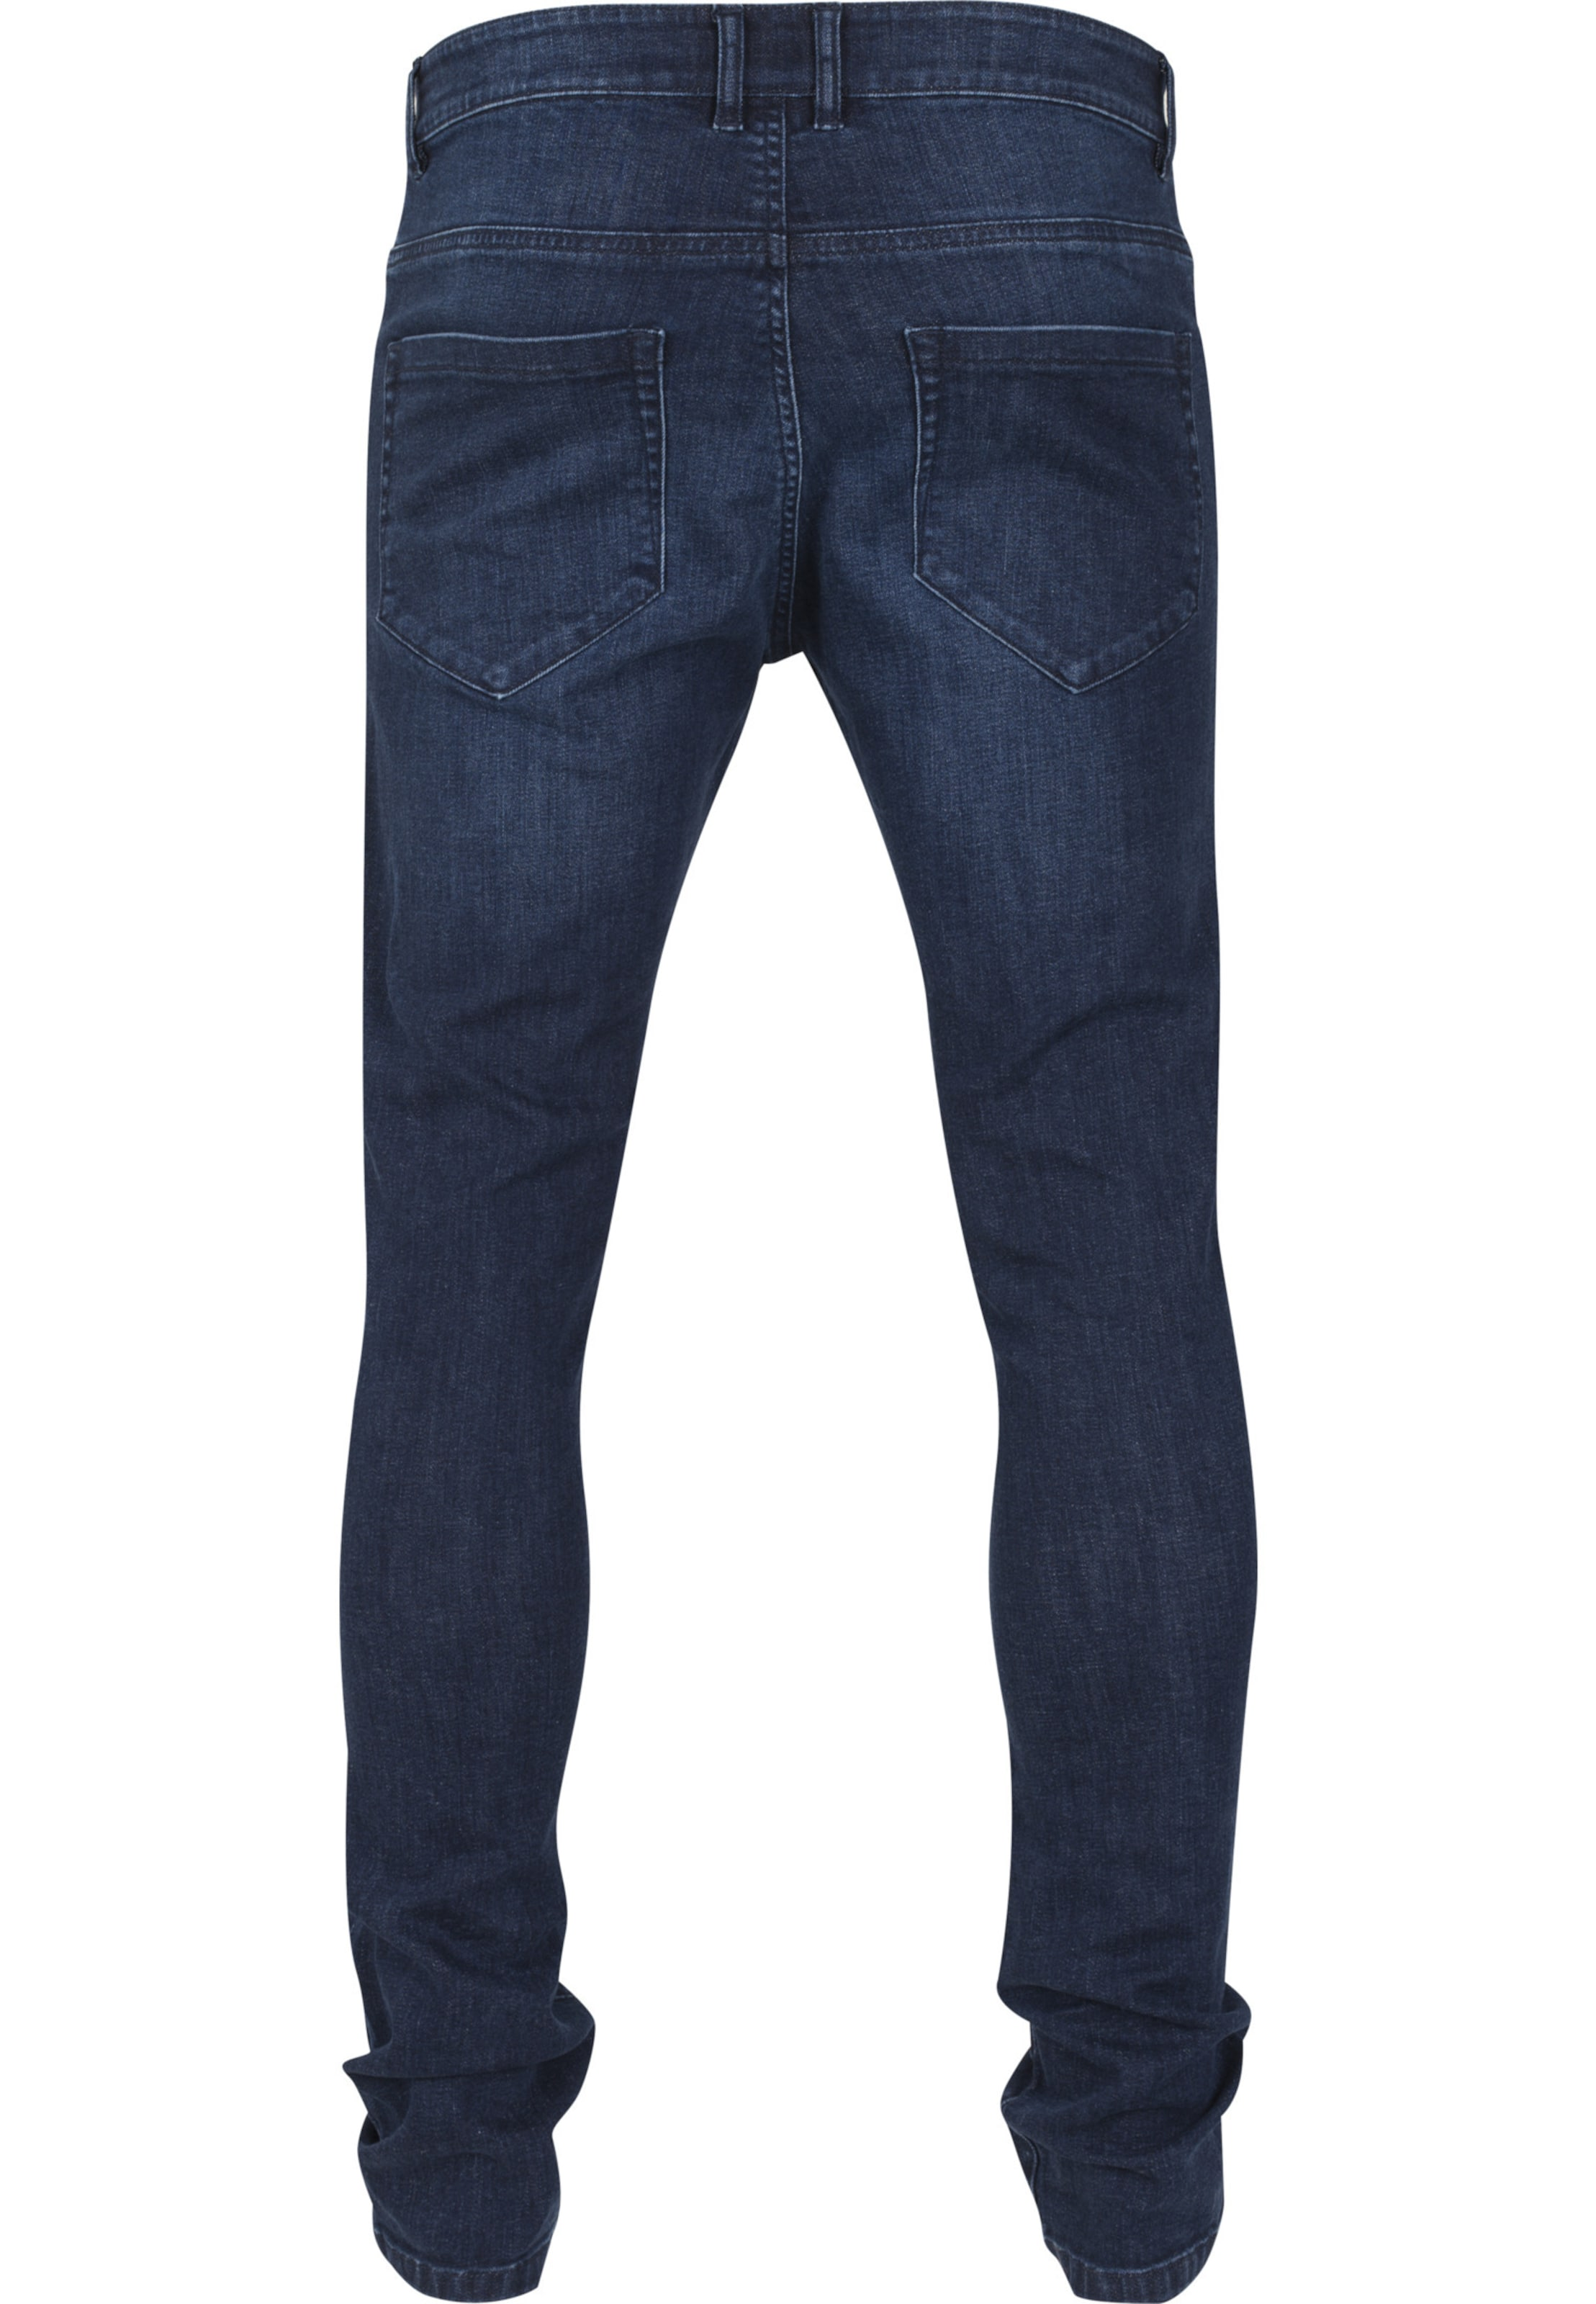 Urban In Blue Classics Denim Urban 4L5qA3Rj